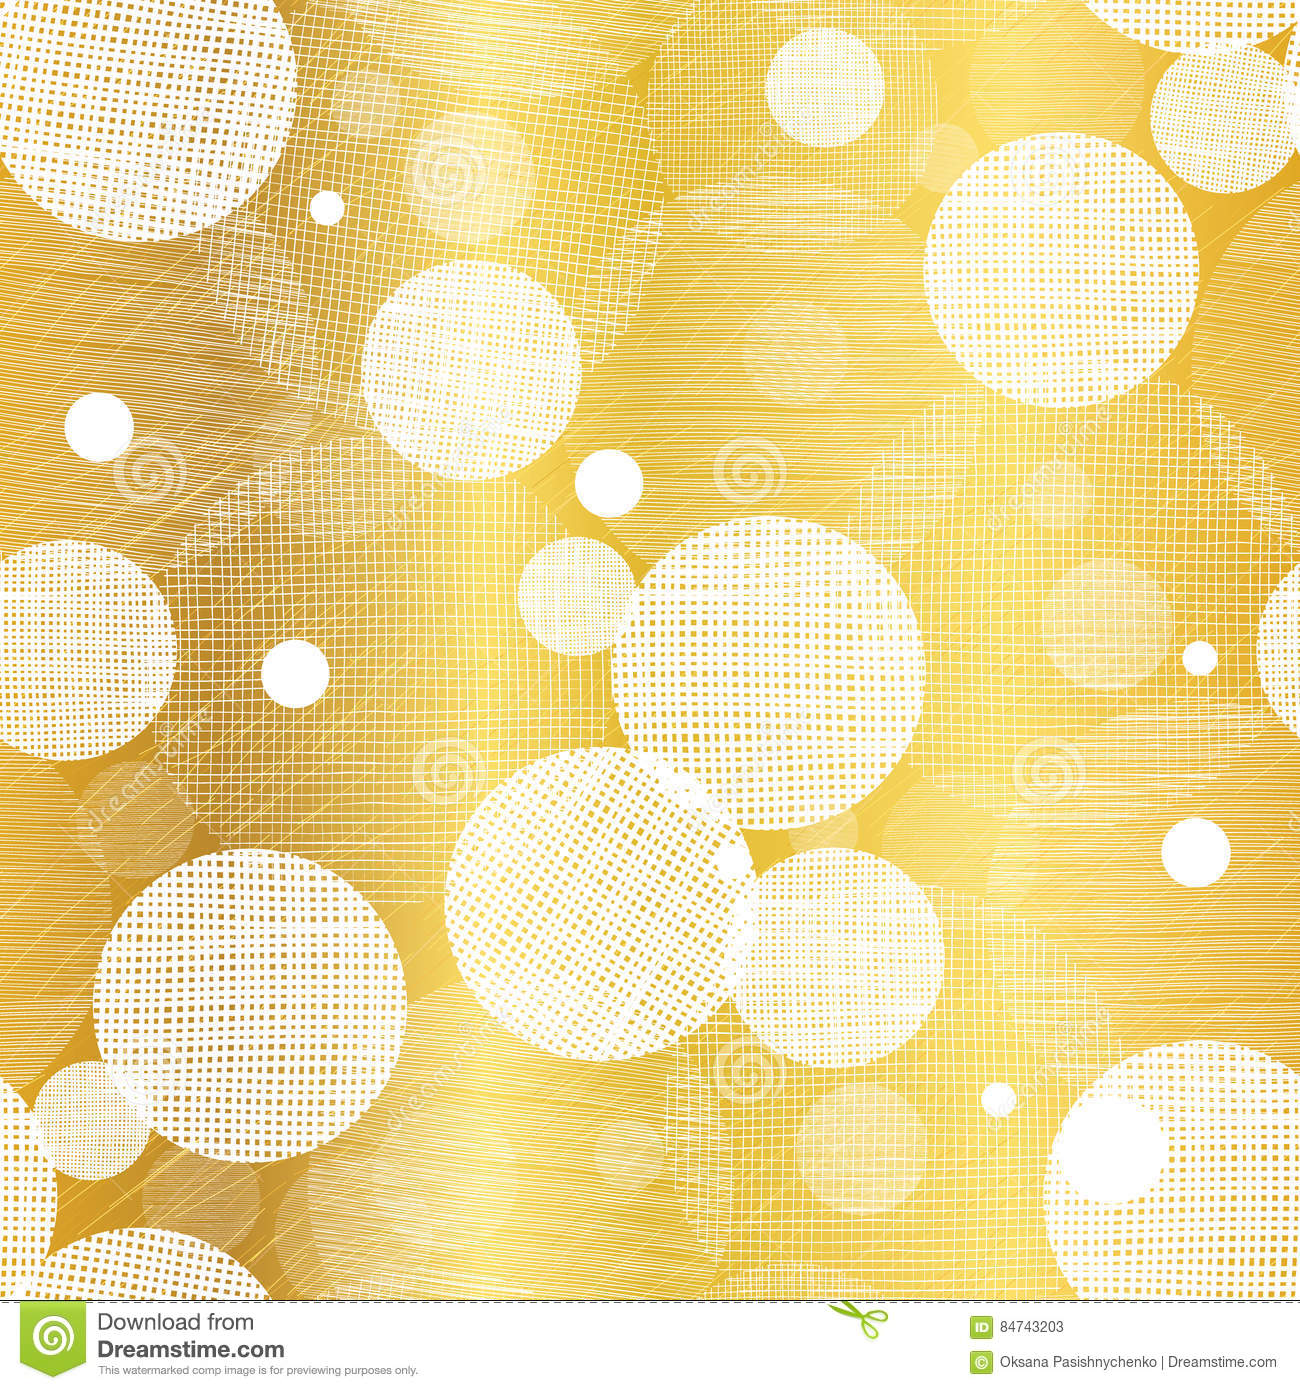 Vector Golden Abstract Swirls Seamless Pattern Background. Great for elegant gold texture fabric, cards, wedding